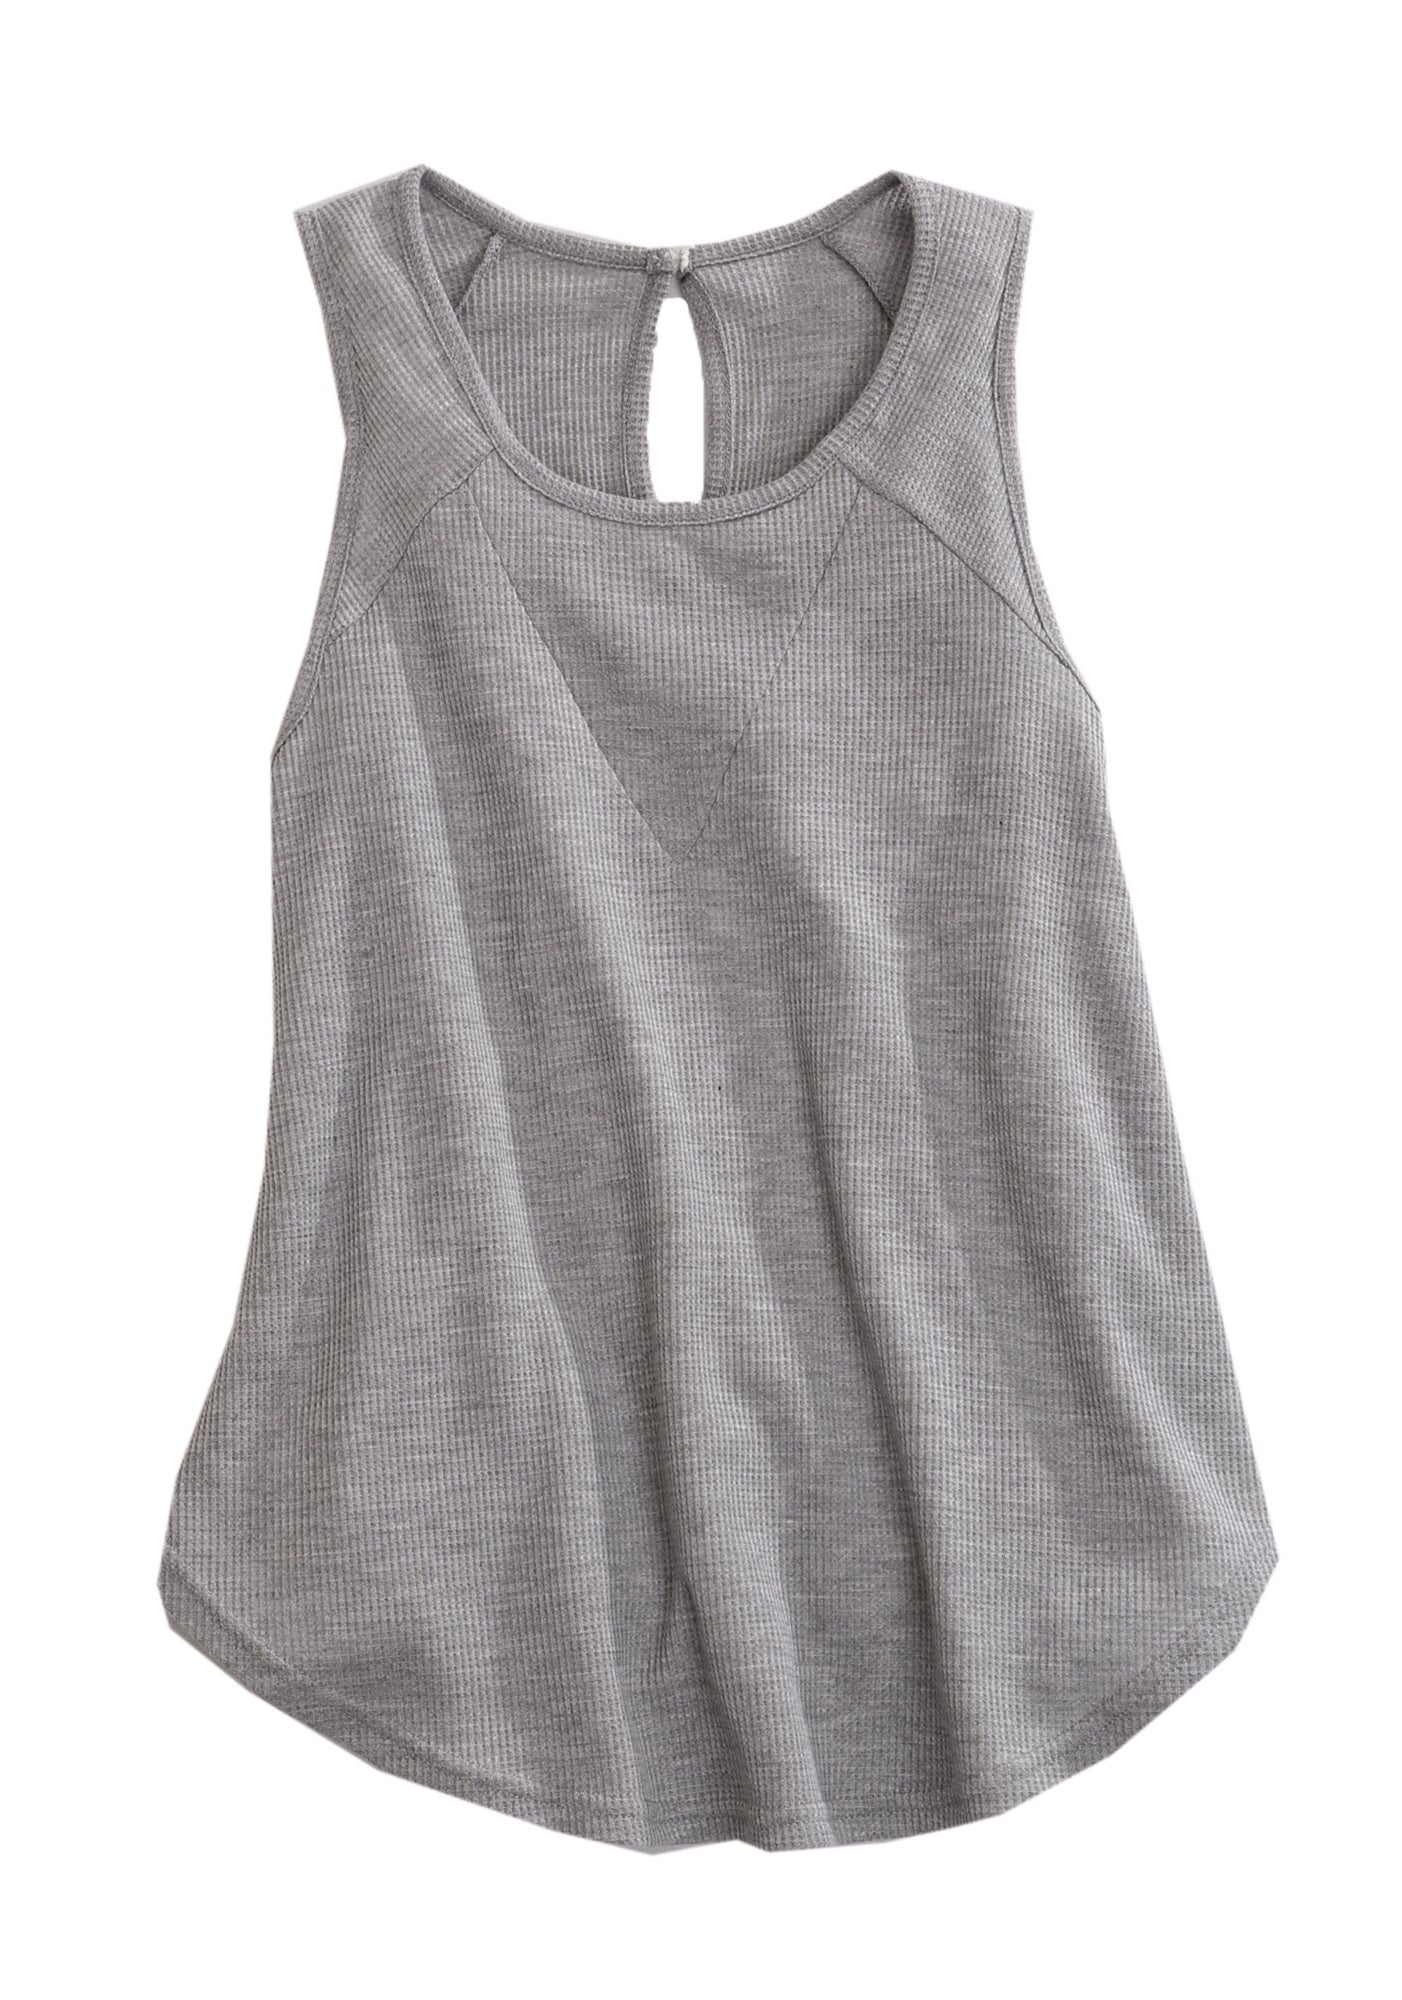 af3da8240c7fb Tin Haul Womens Grey Poly Rayon Thermal Knit Tank Top – The Western ...